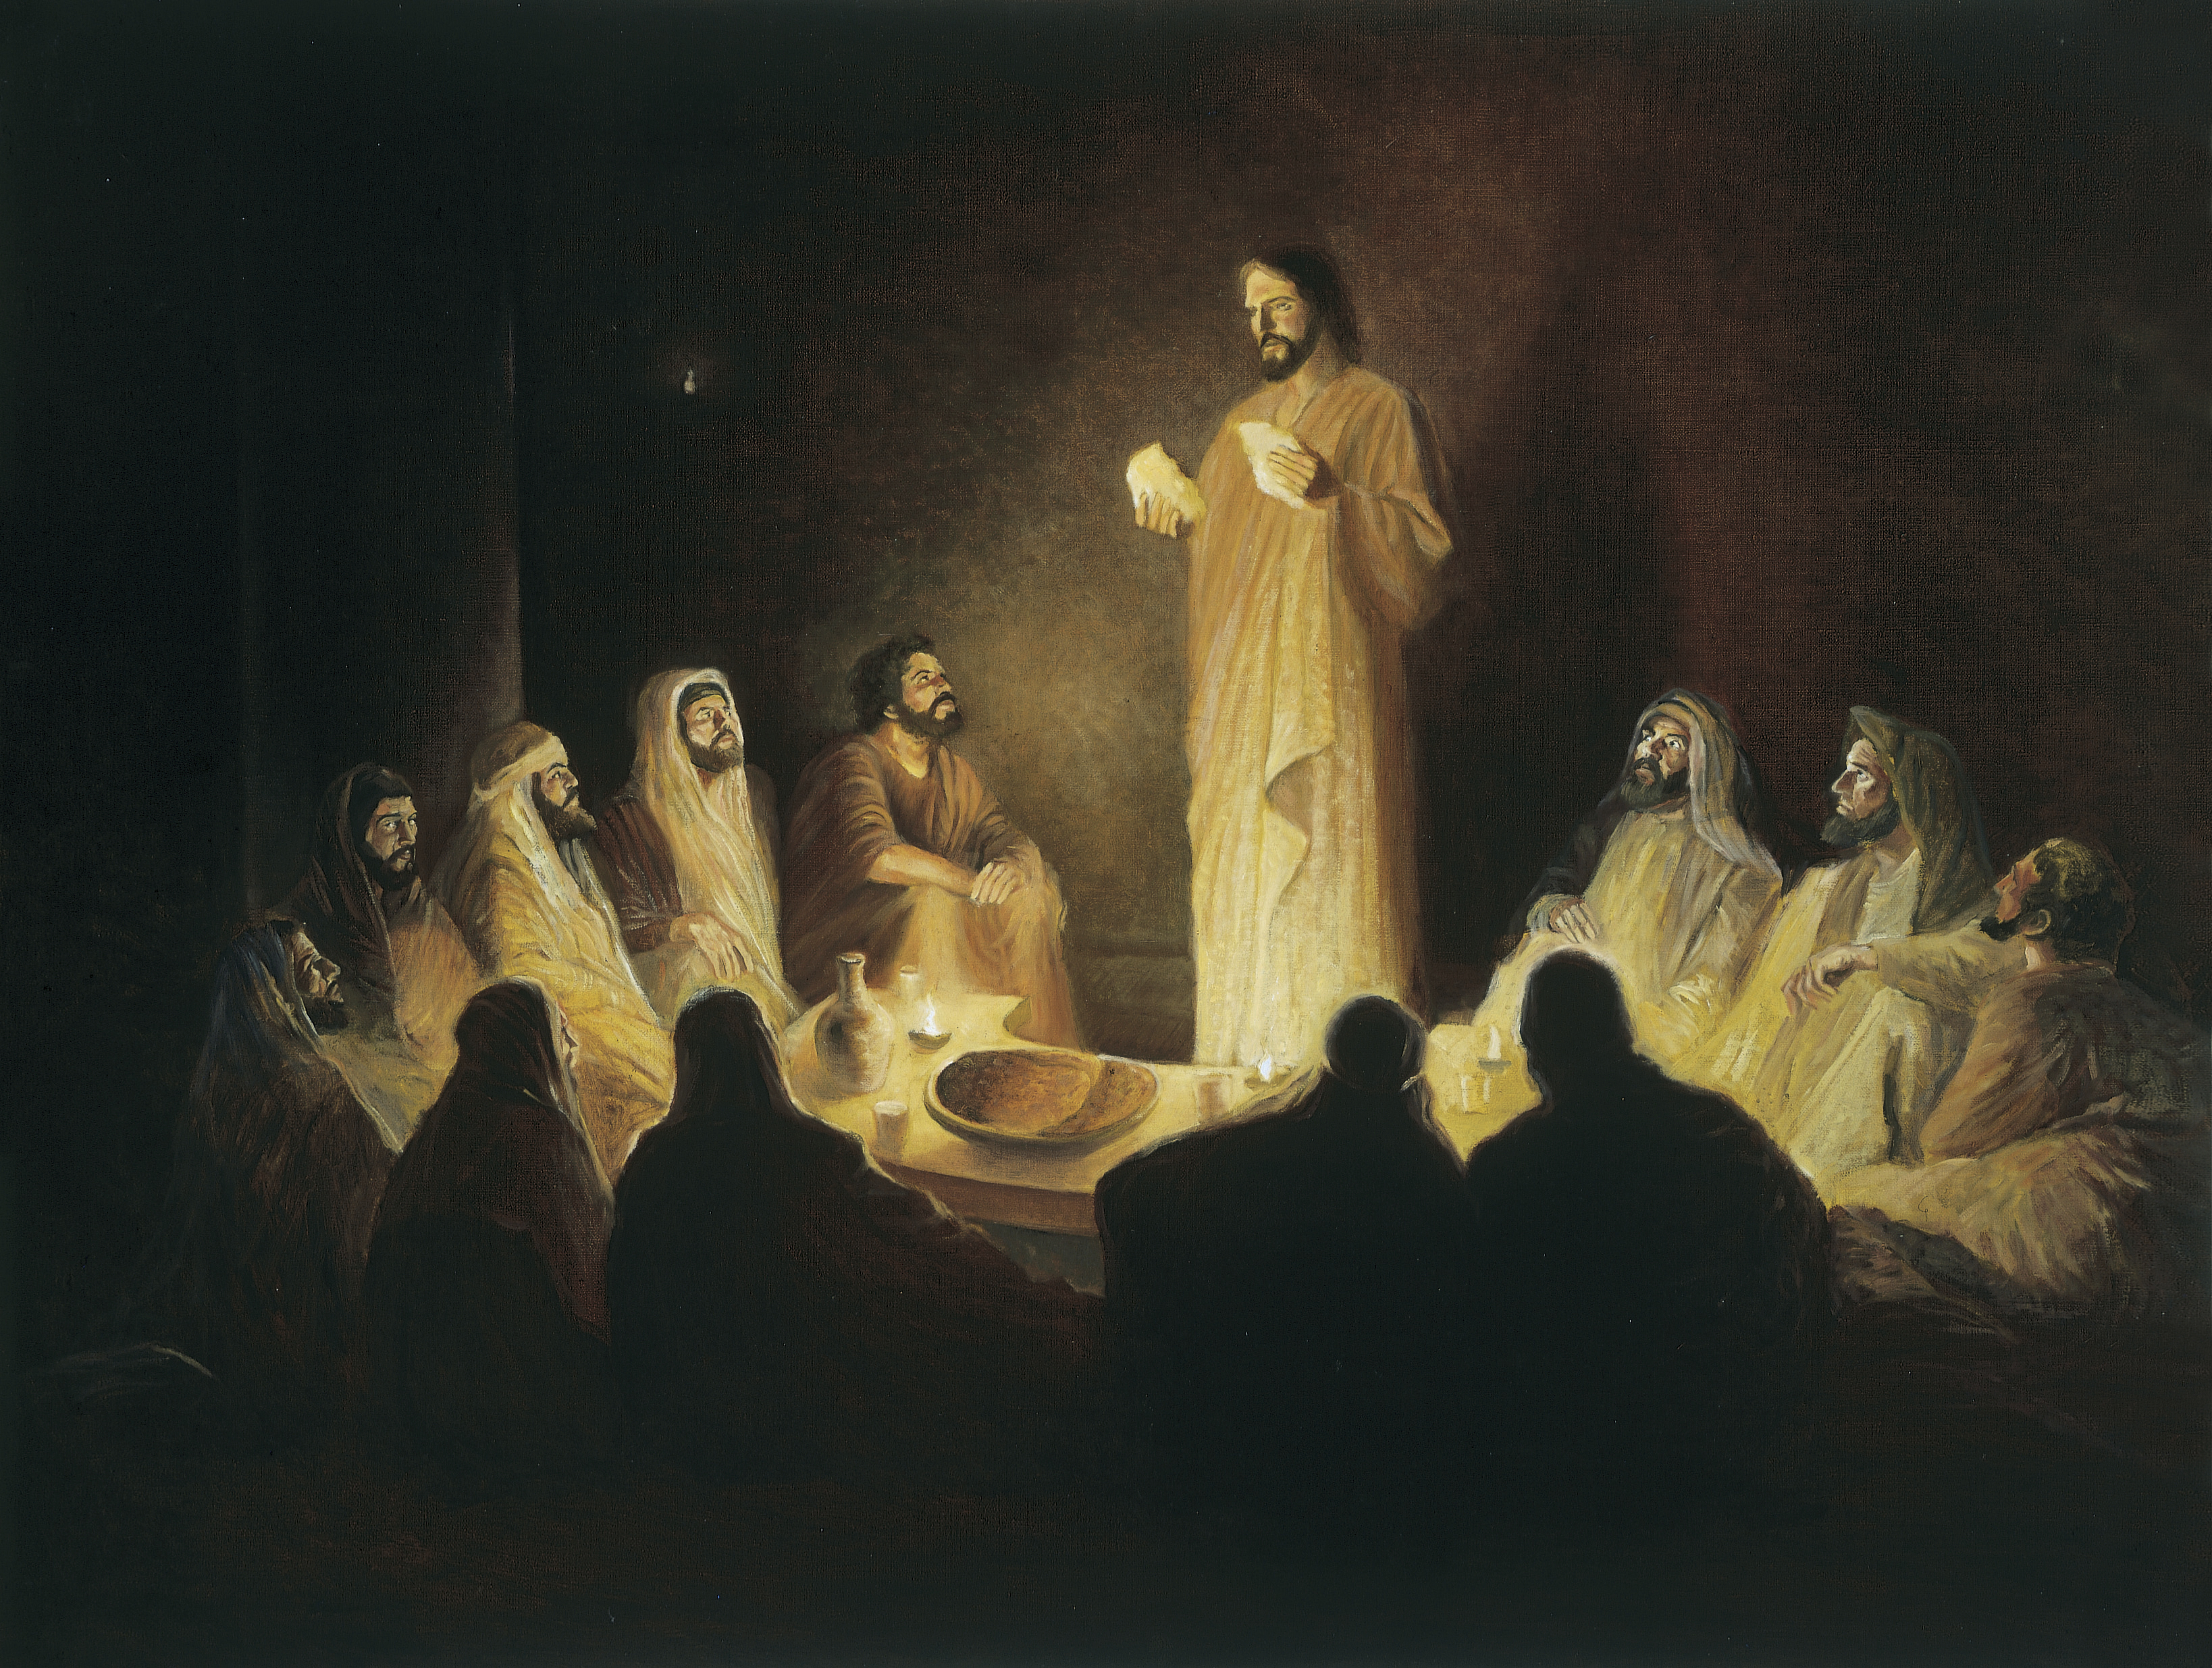 jesus_christ_last_supper_apostles